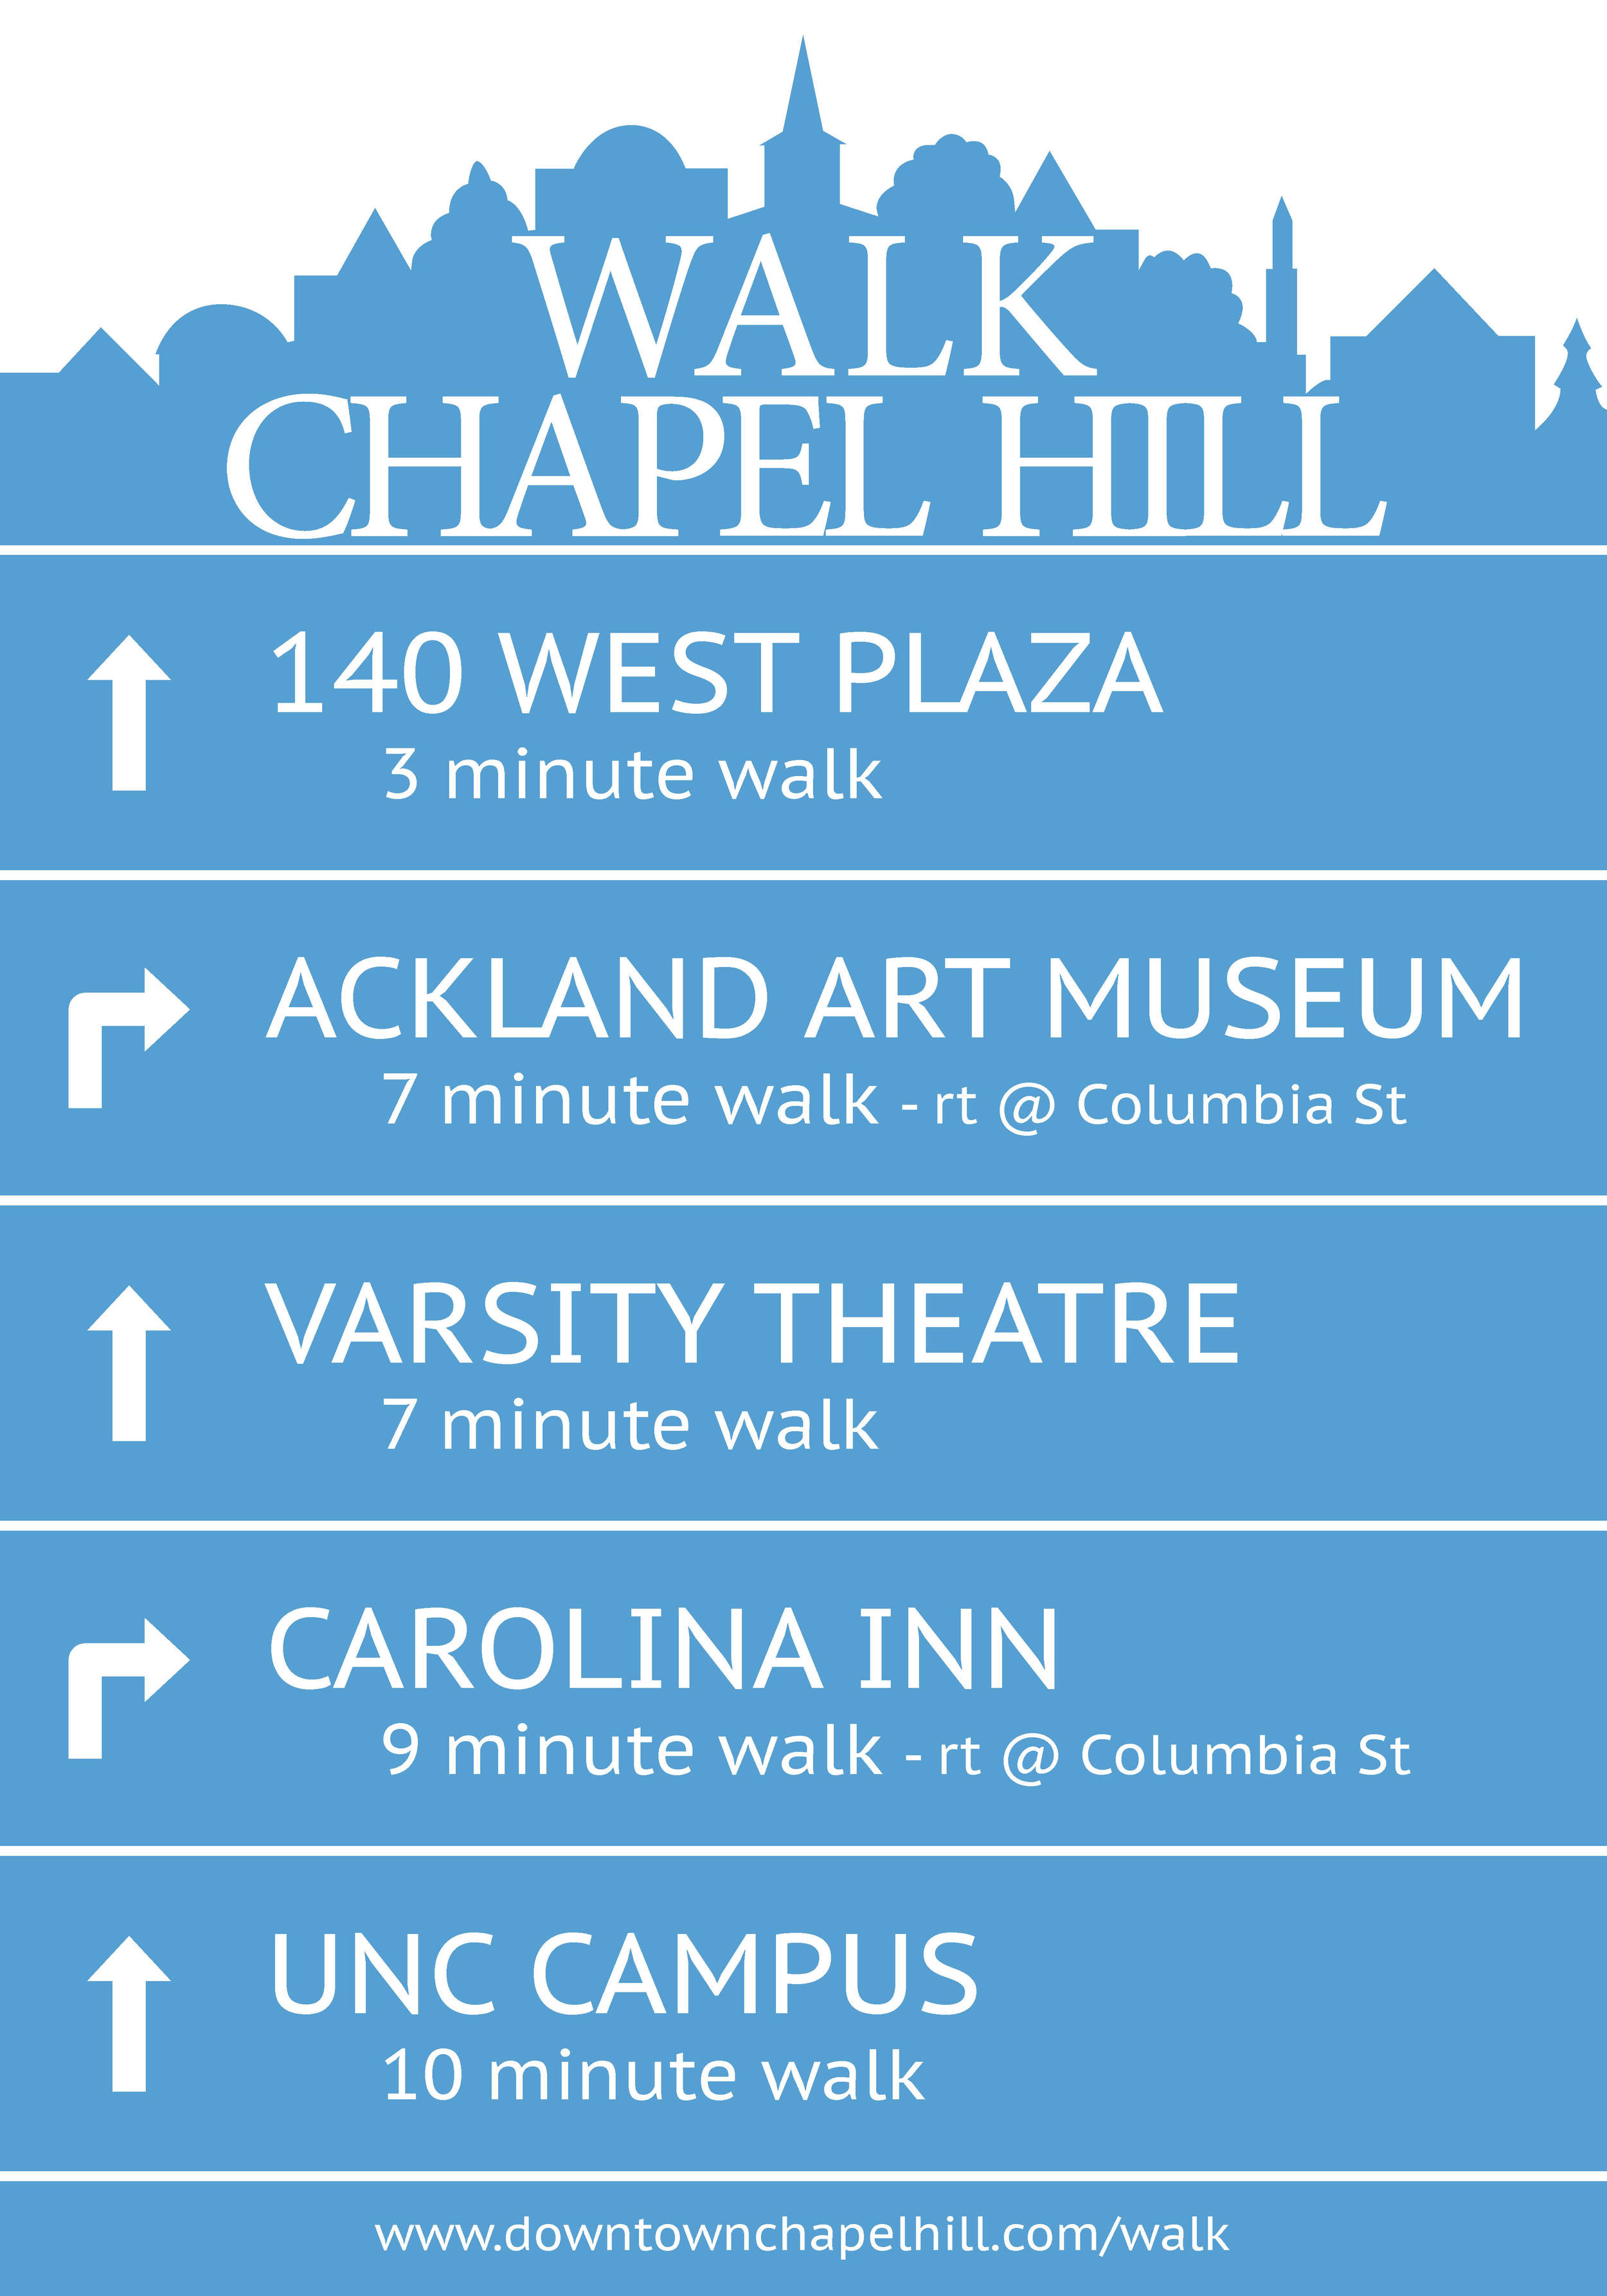 An example of a Walk Chapel Hill sign